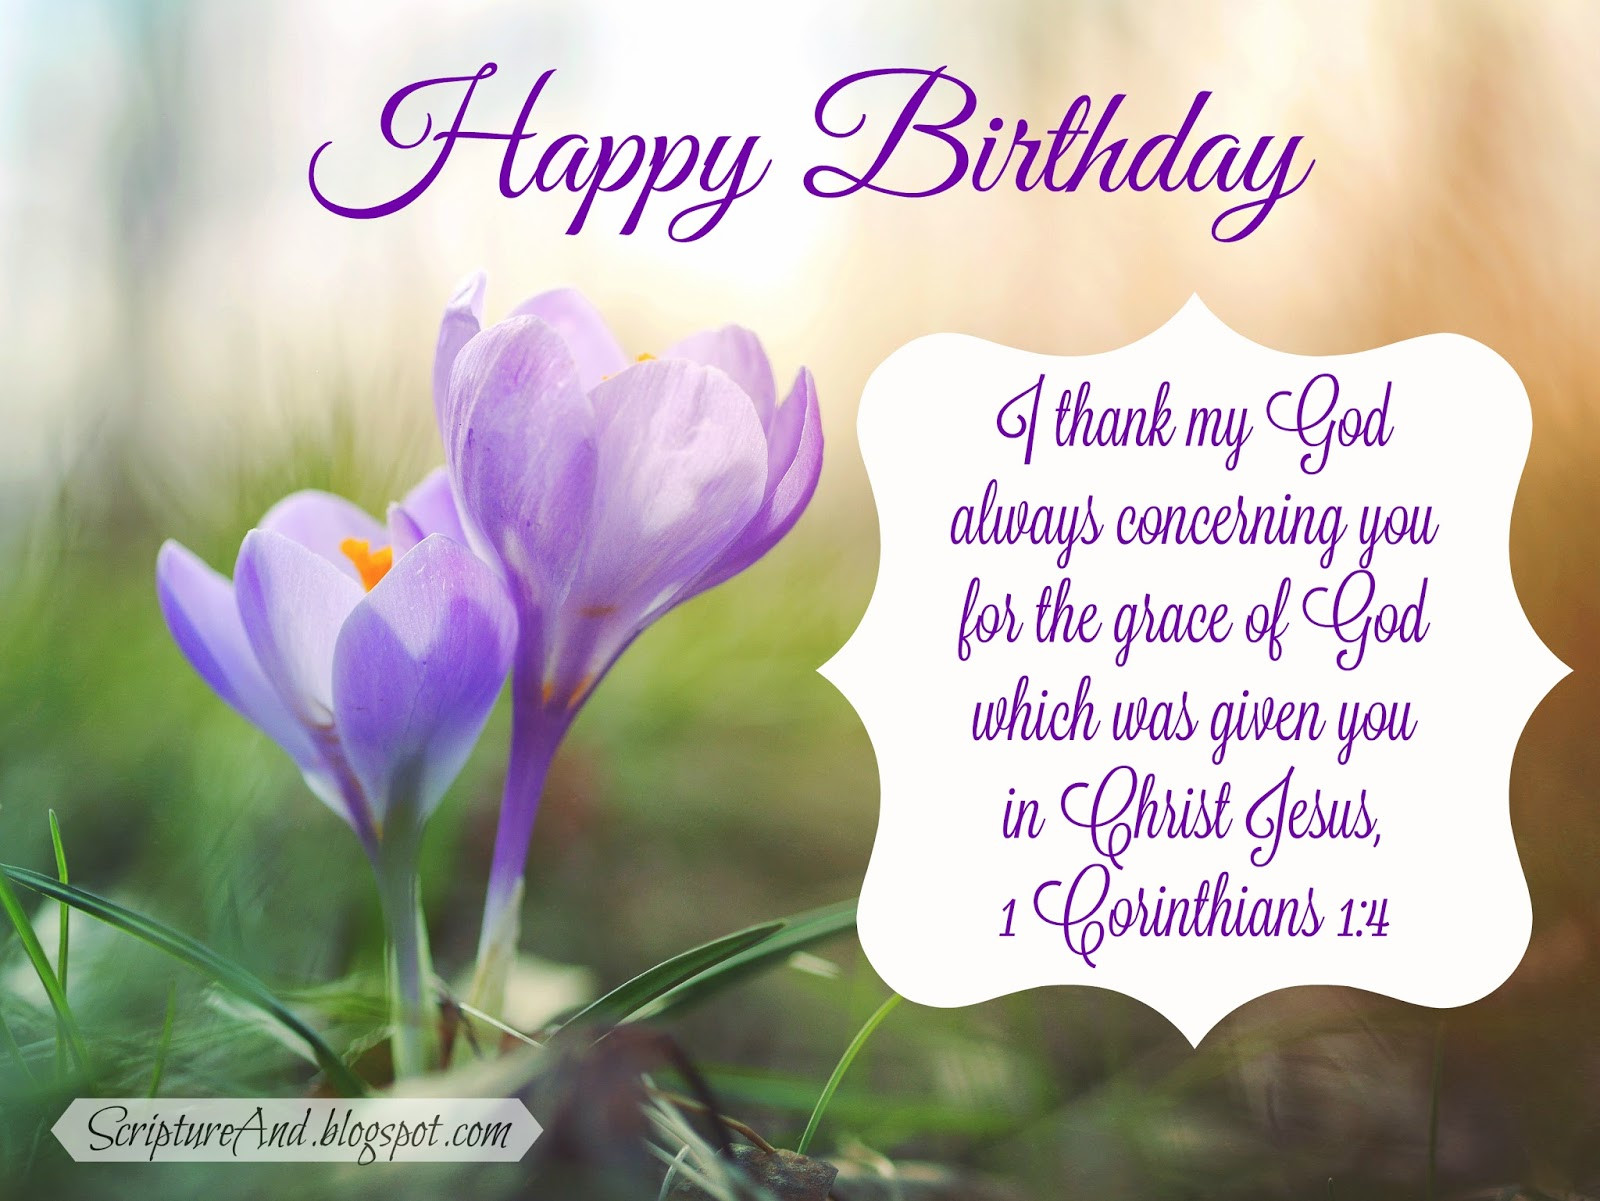 Best ideas about Happy Birthday Bible Quotes . Save or Pin Scripture and Free Birthday with Bible Verses Now.